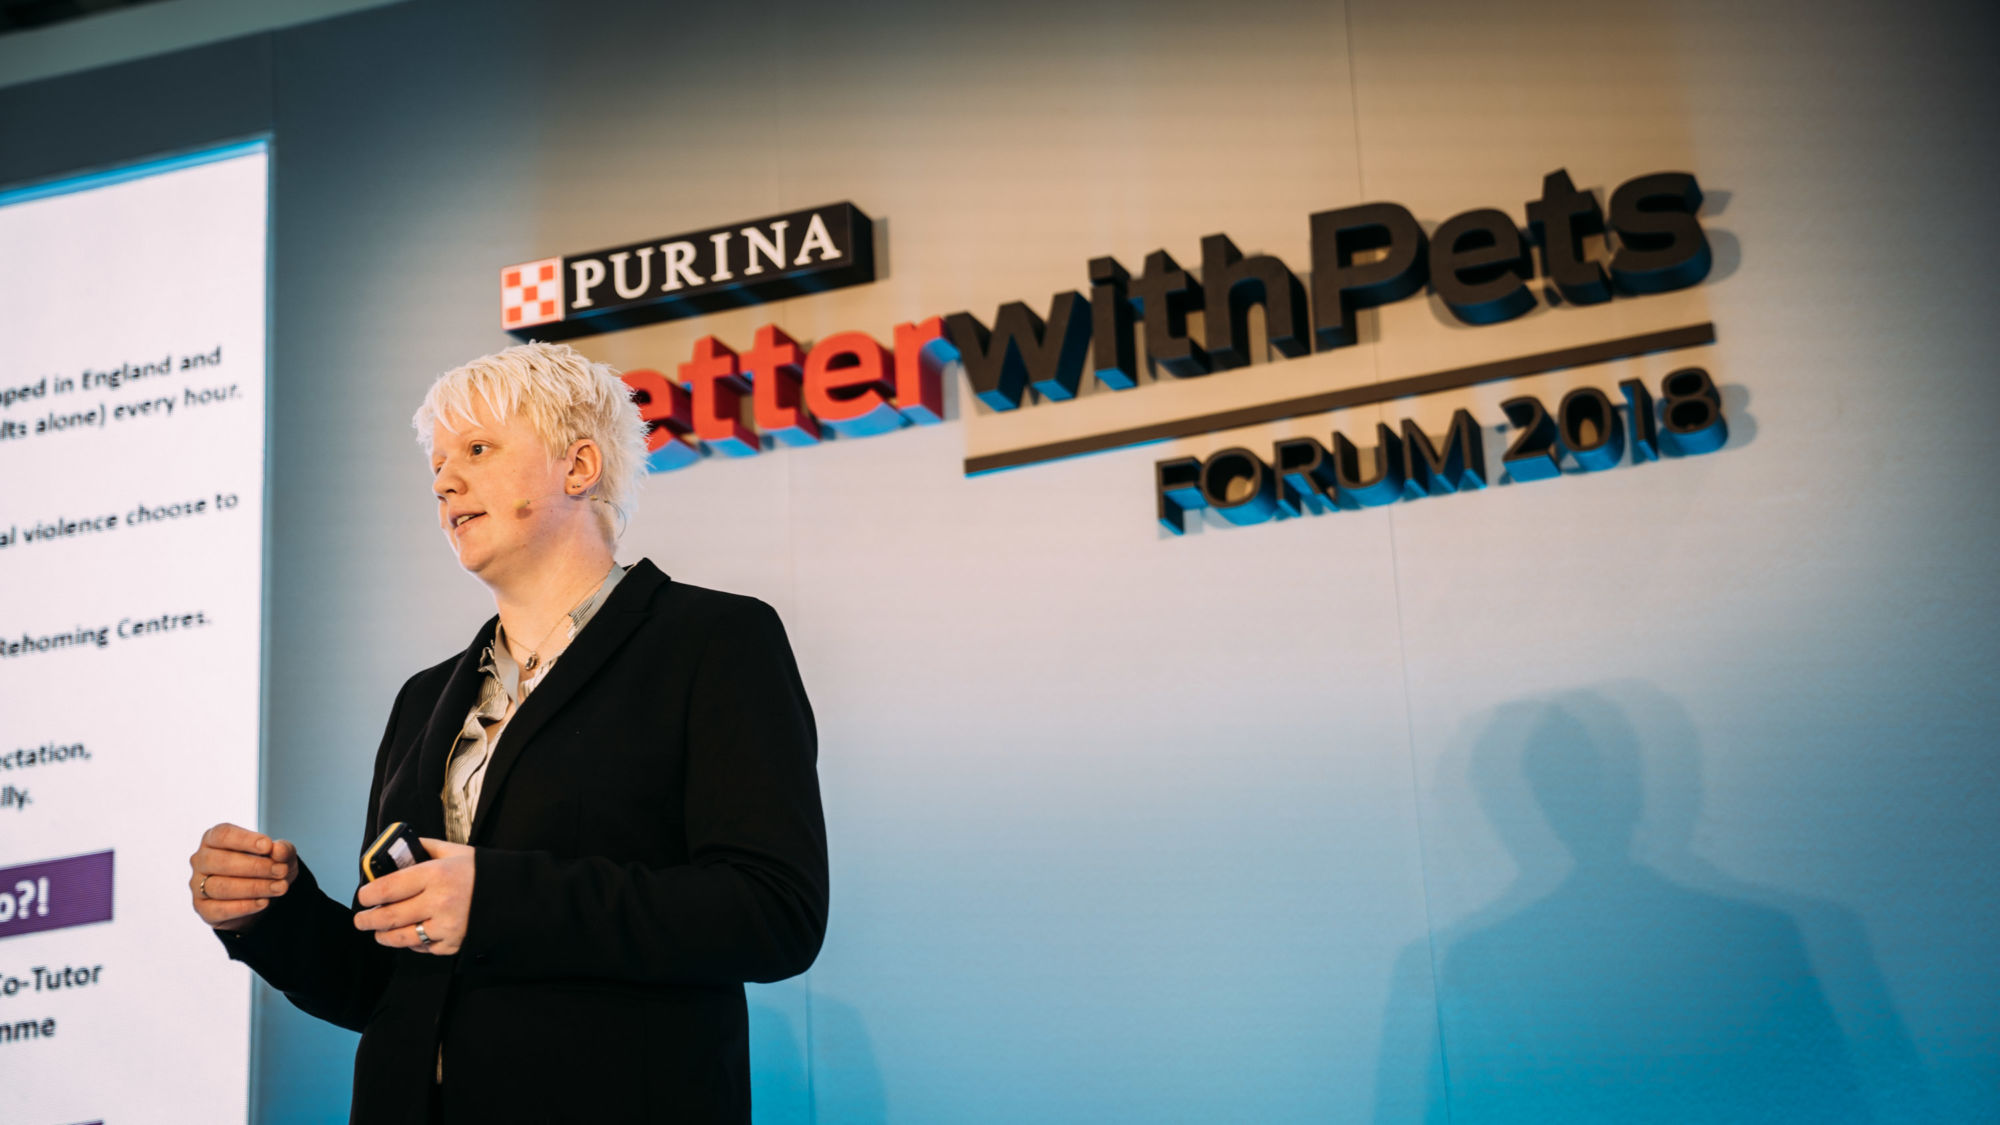 Team Canine Perspective At The Purina BetterWithPets Forum 2018